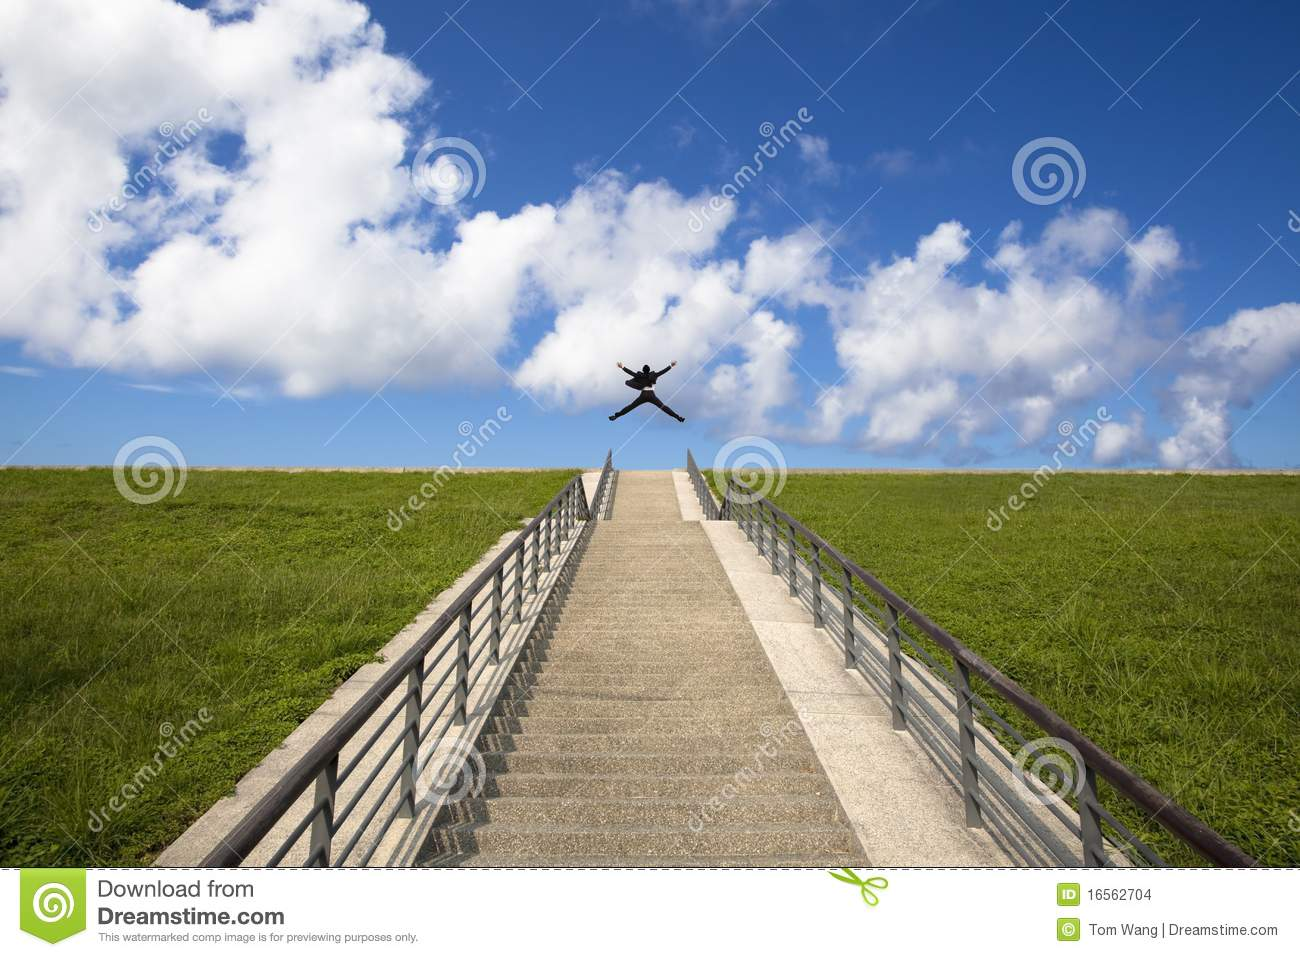 The stairs to the success